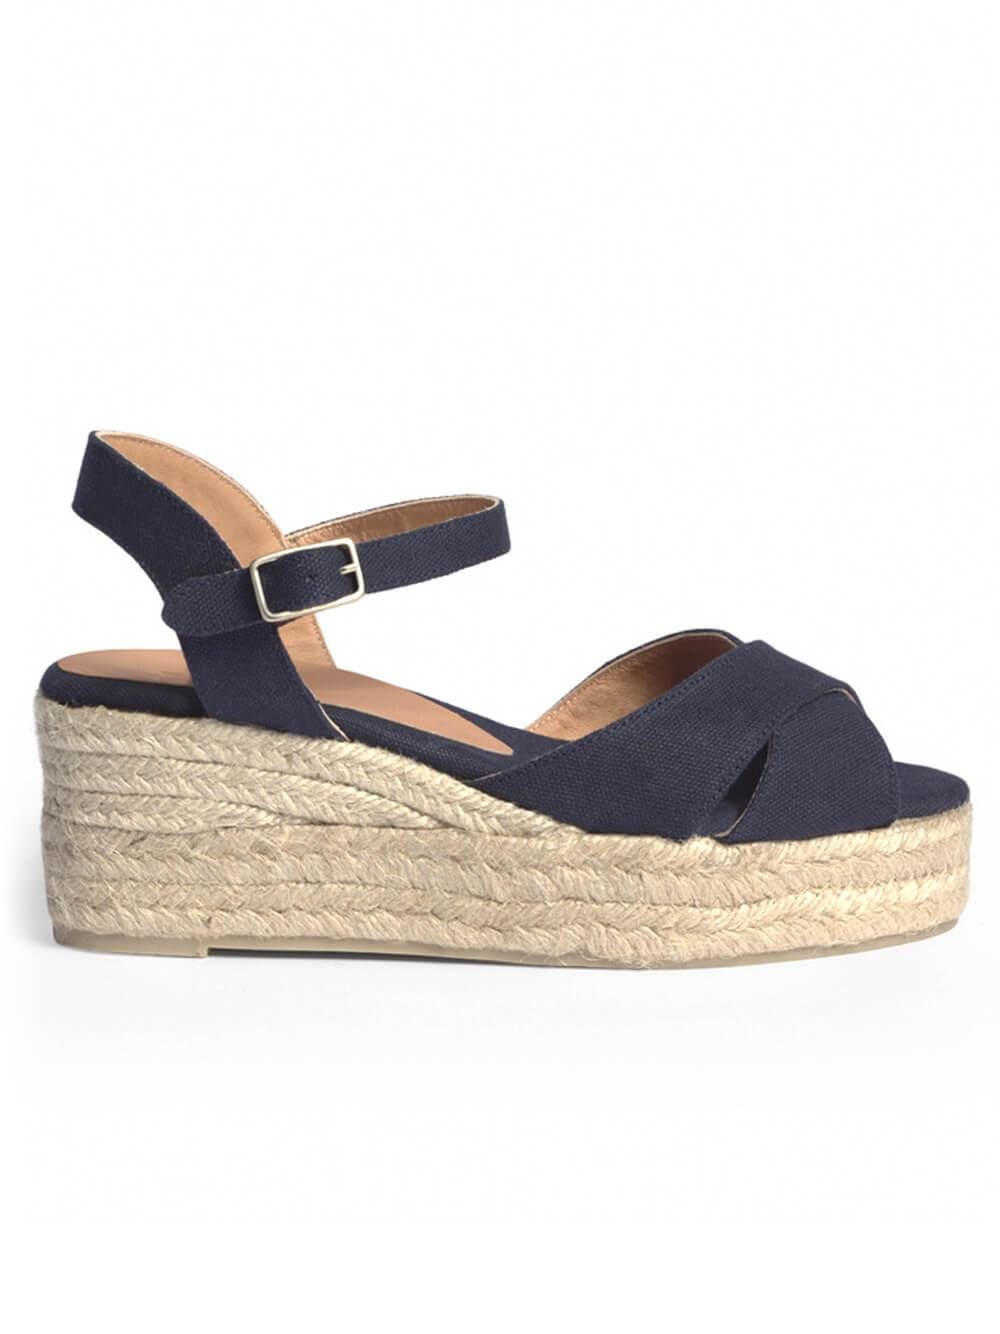 Blaudell Canvas Wedge